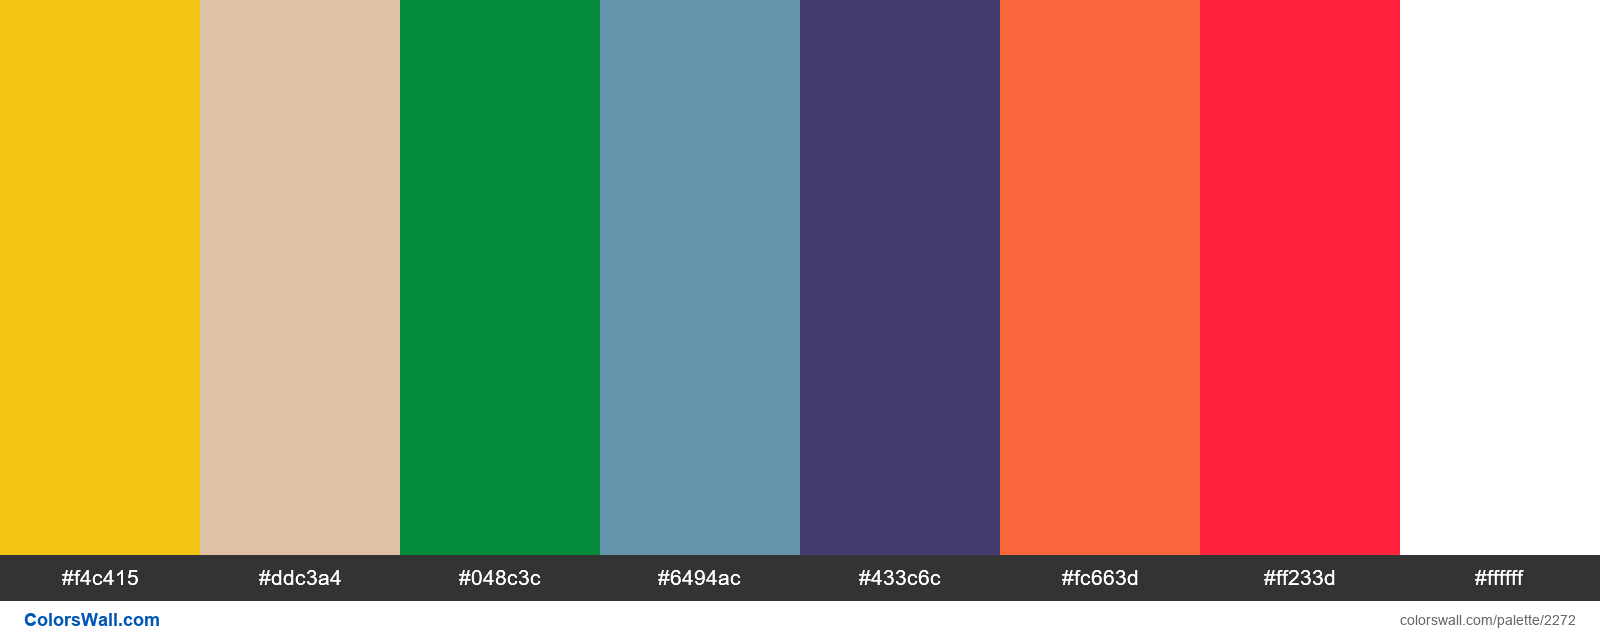 Office crayan colors - #2272